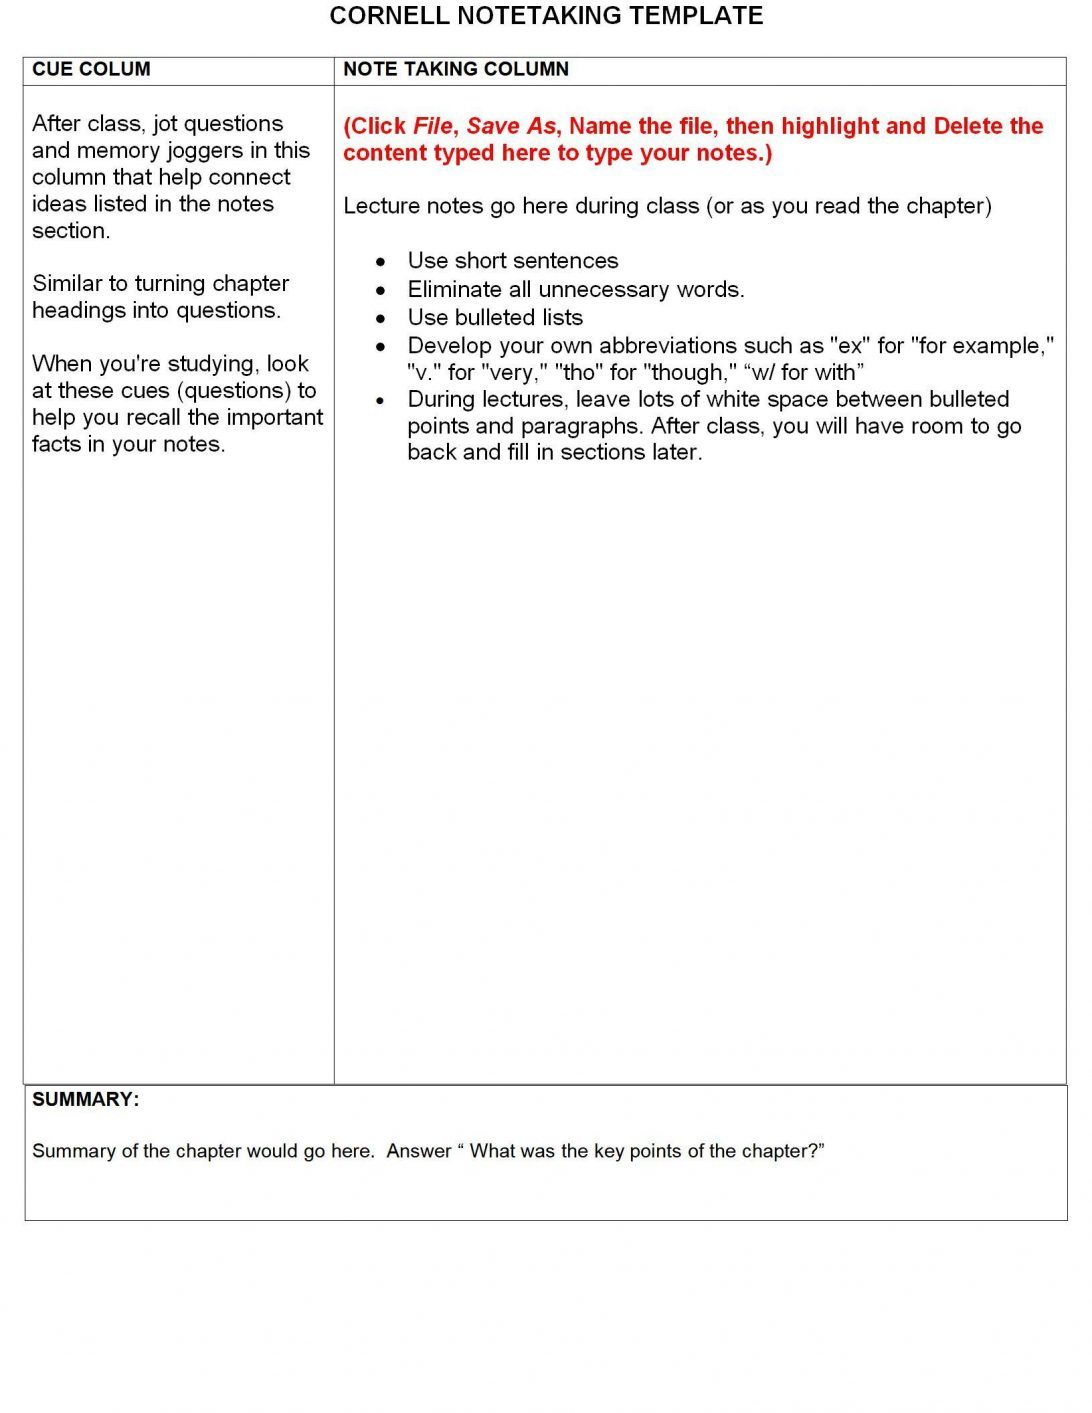 Note Taking Template Cornell Notebook For History Avid Pdf Within Note Taking Template Word Cornell Notes Template Word Cornell Notes Template Notes Template